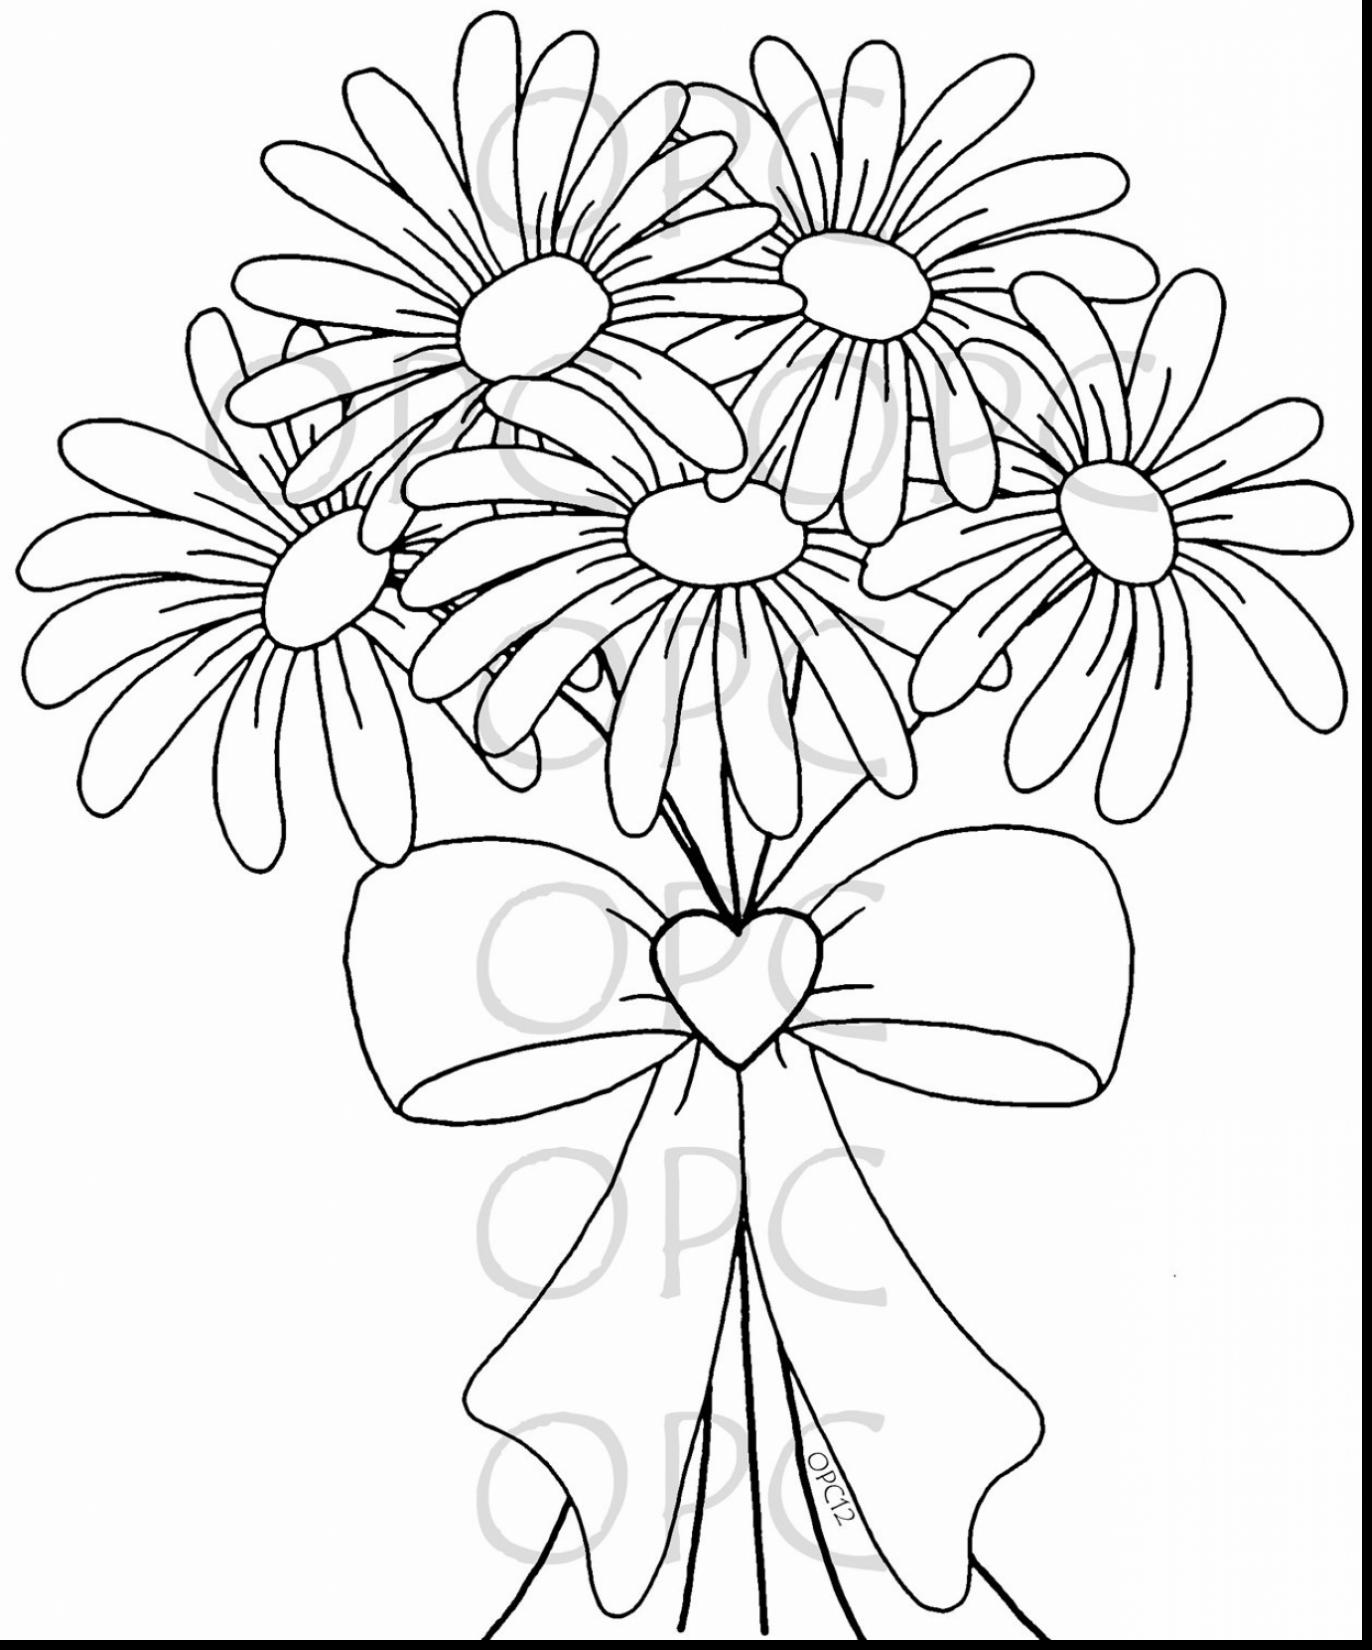 daisy coloring book pages - photo#38